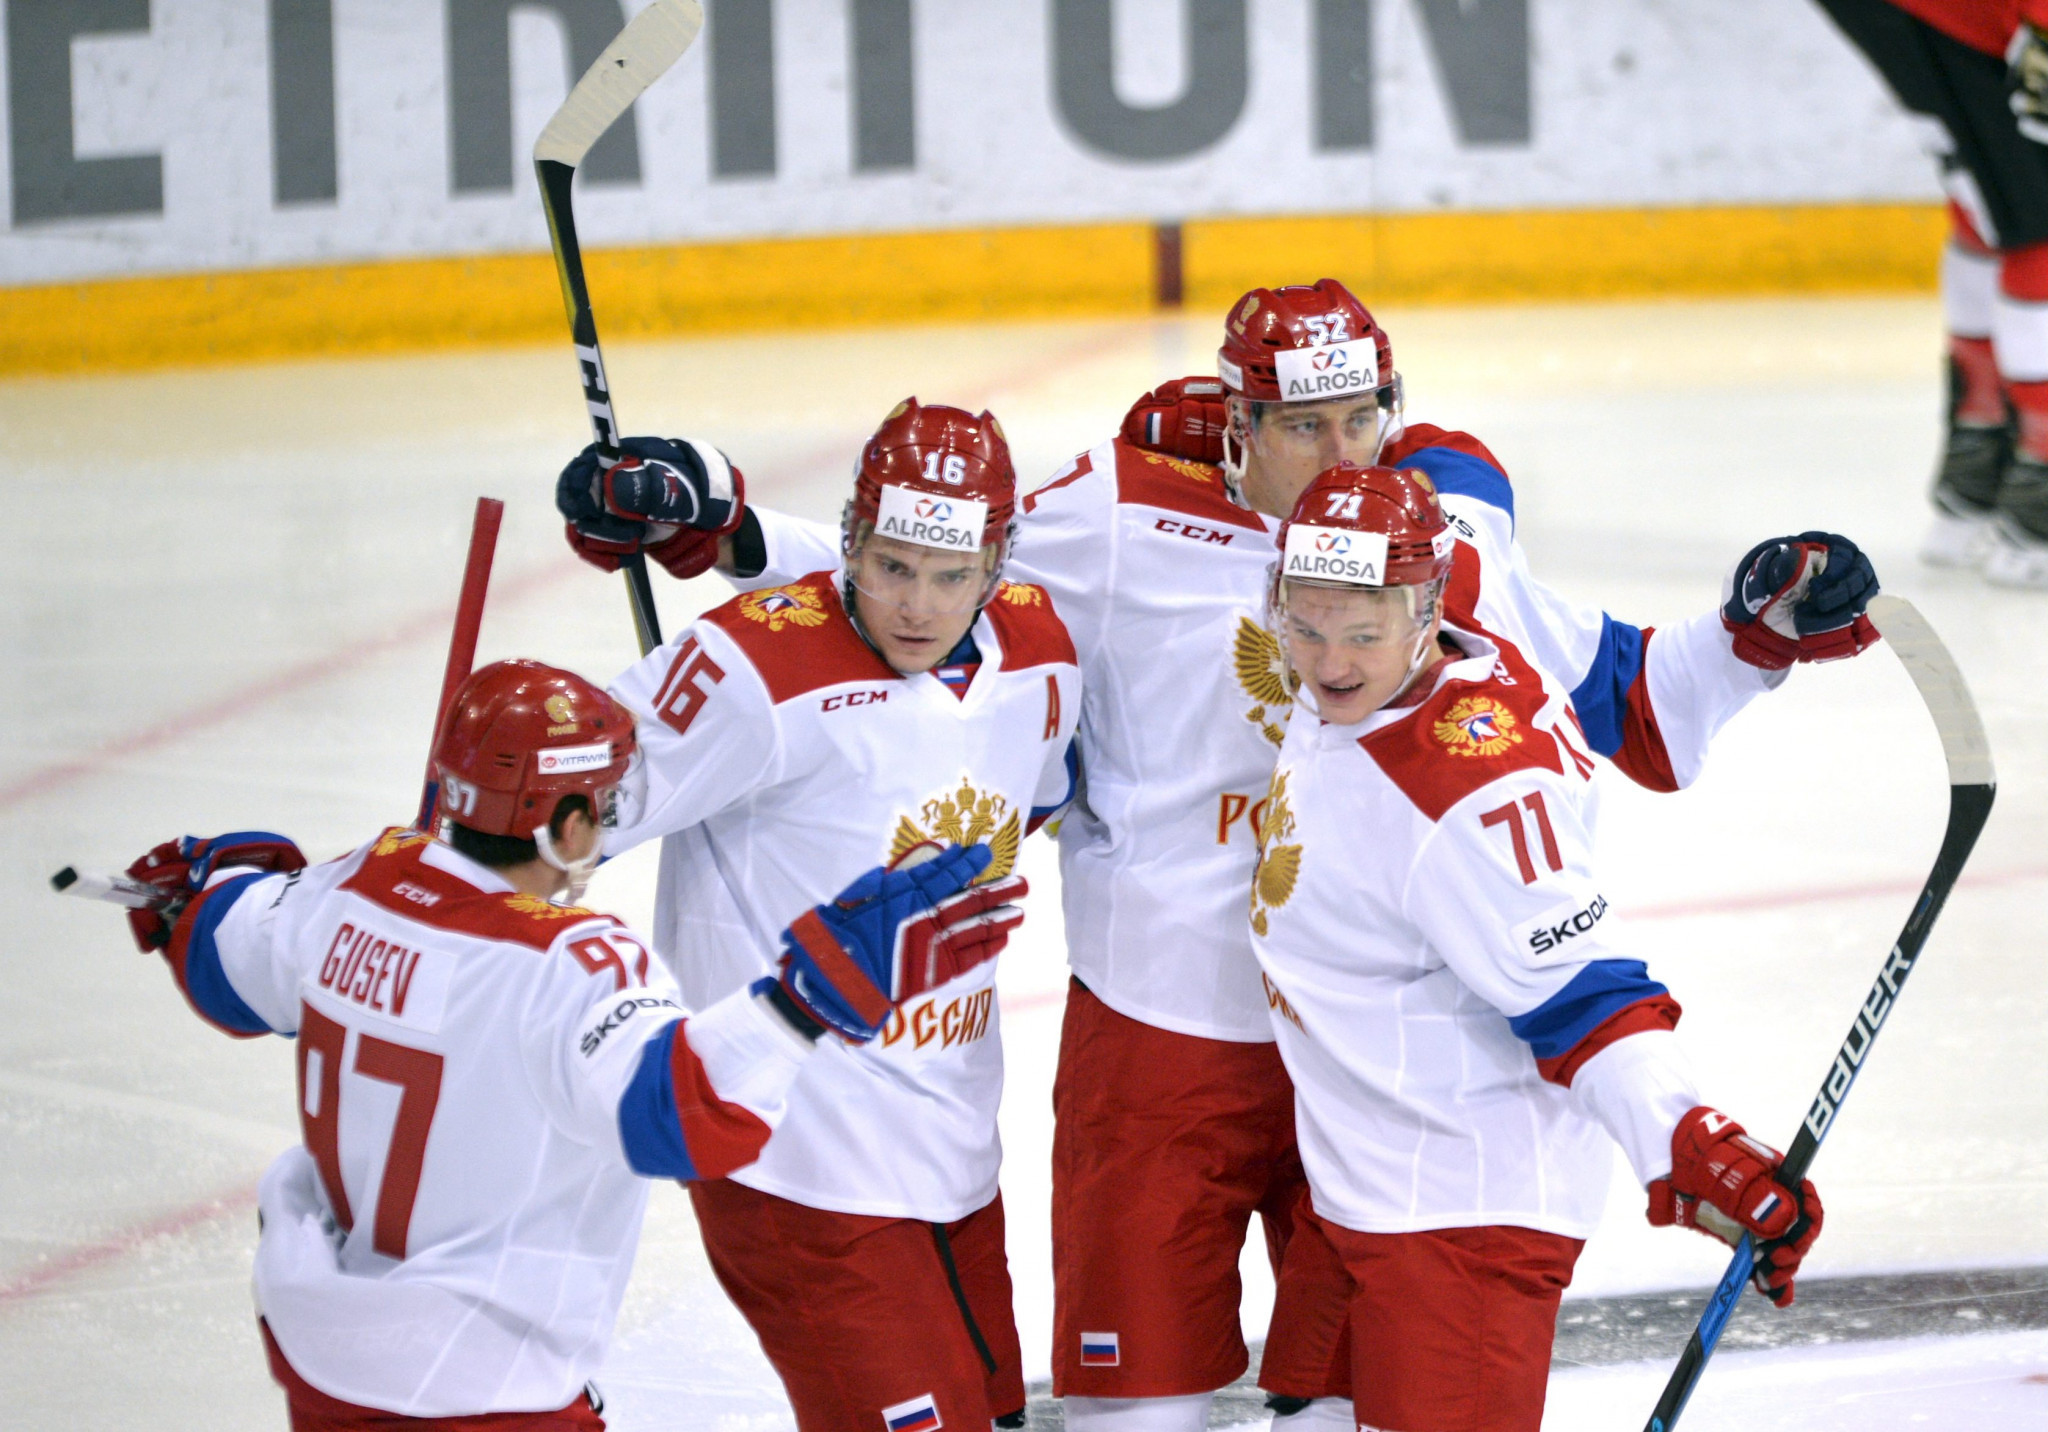 The IIHF has given its full support to Russia competing at Pyeongchang 2018 ©Getty Images